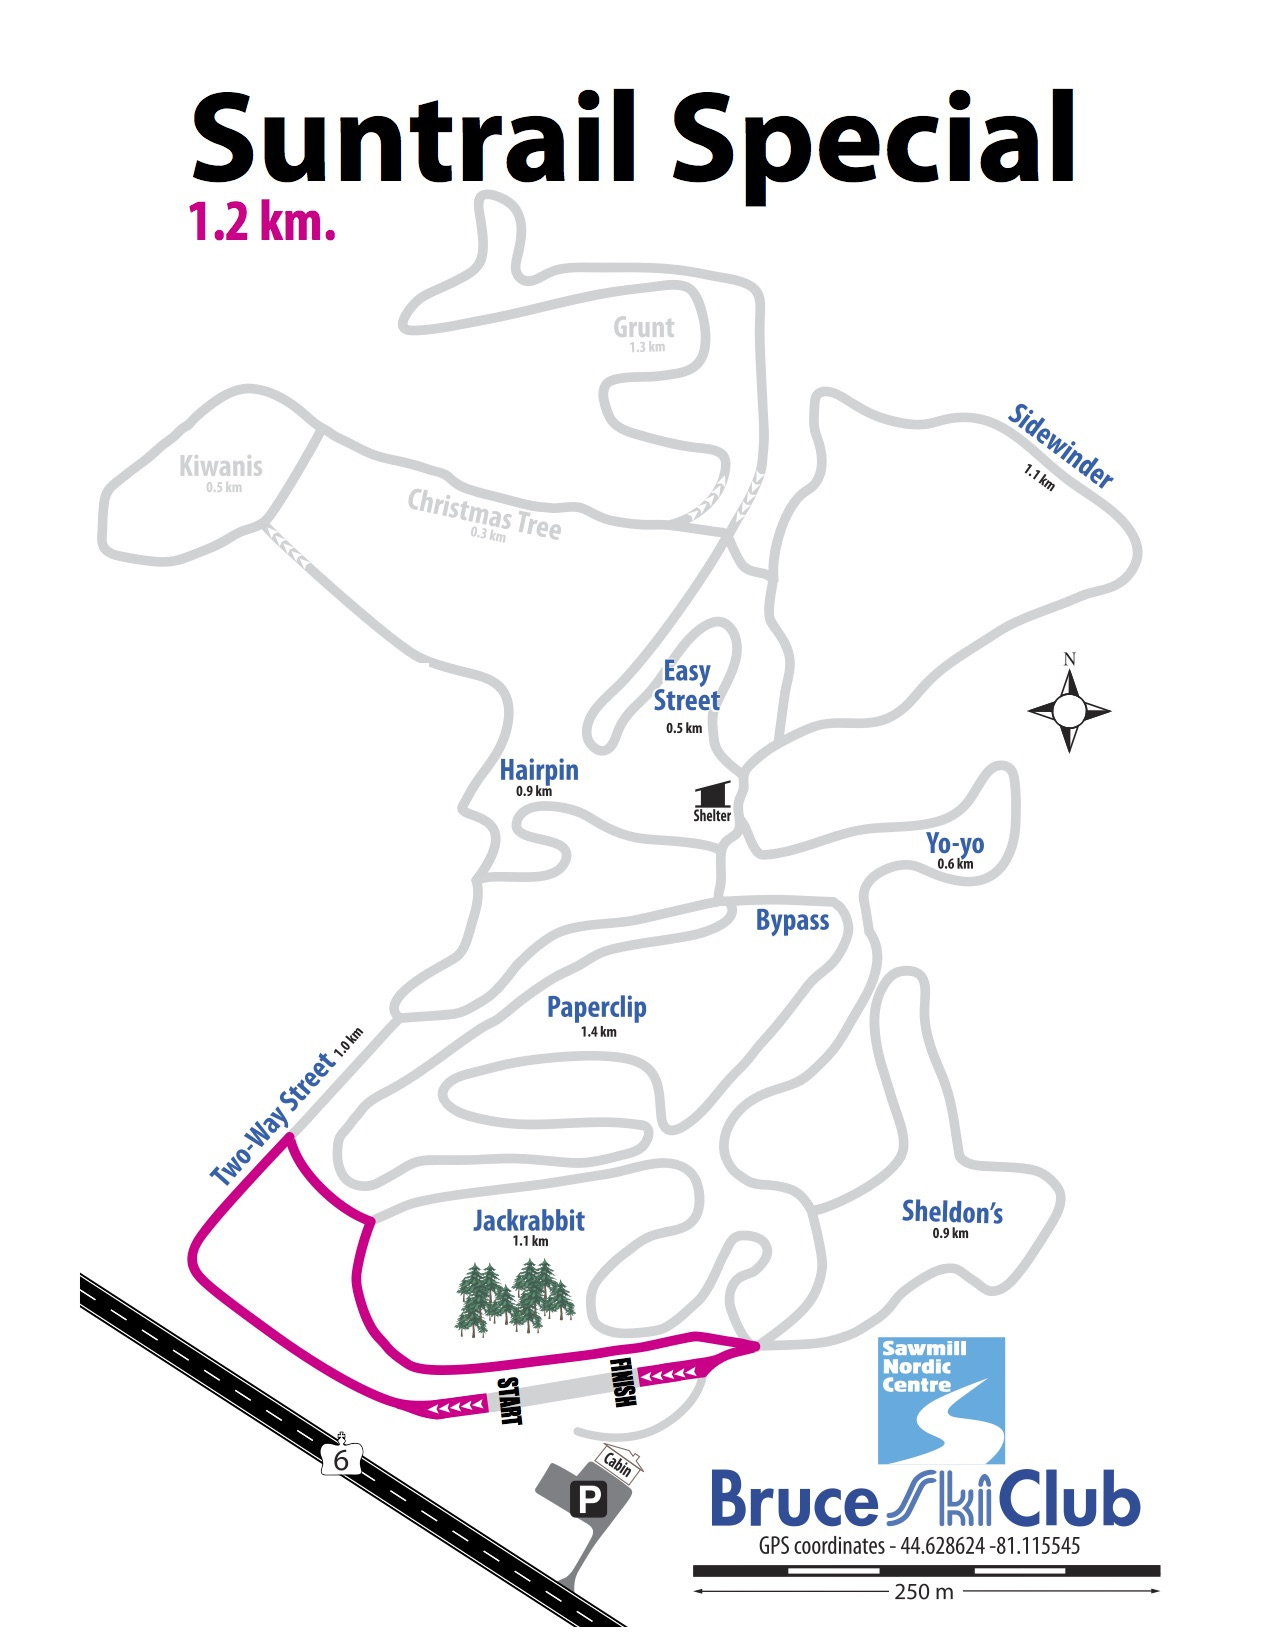 2019 Suntrail Special Cross-Country Ski Race Map – 1.2 km